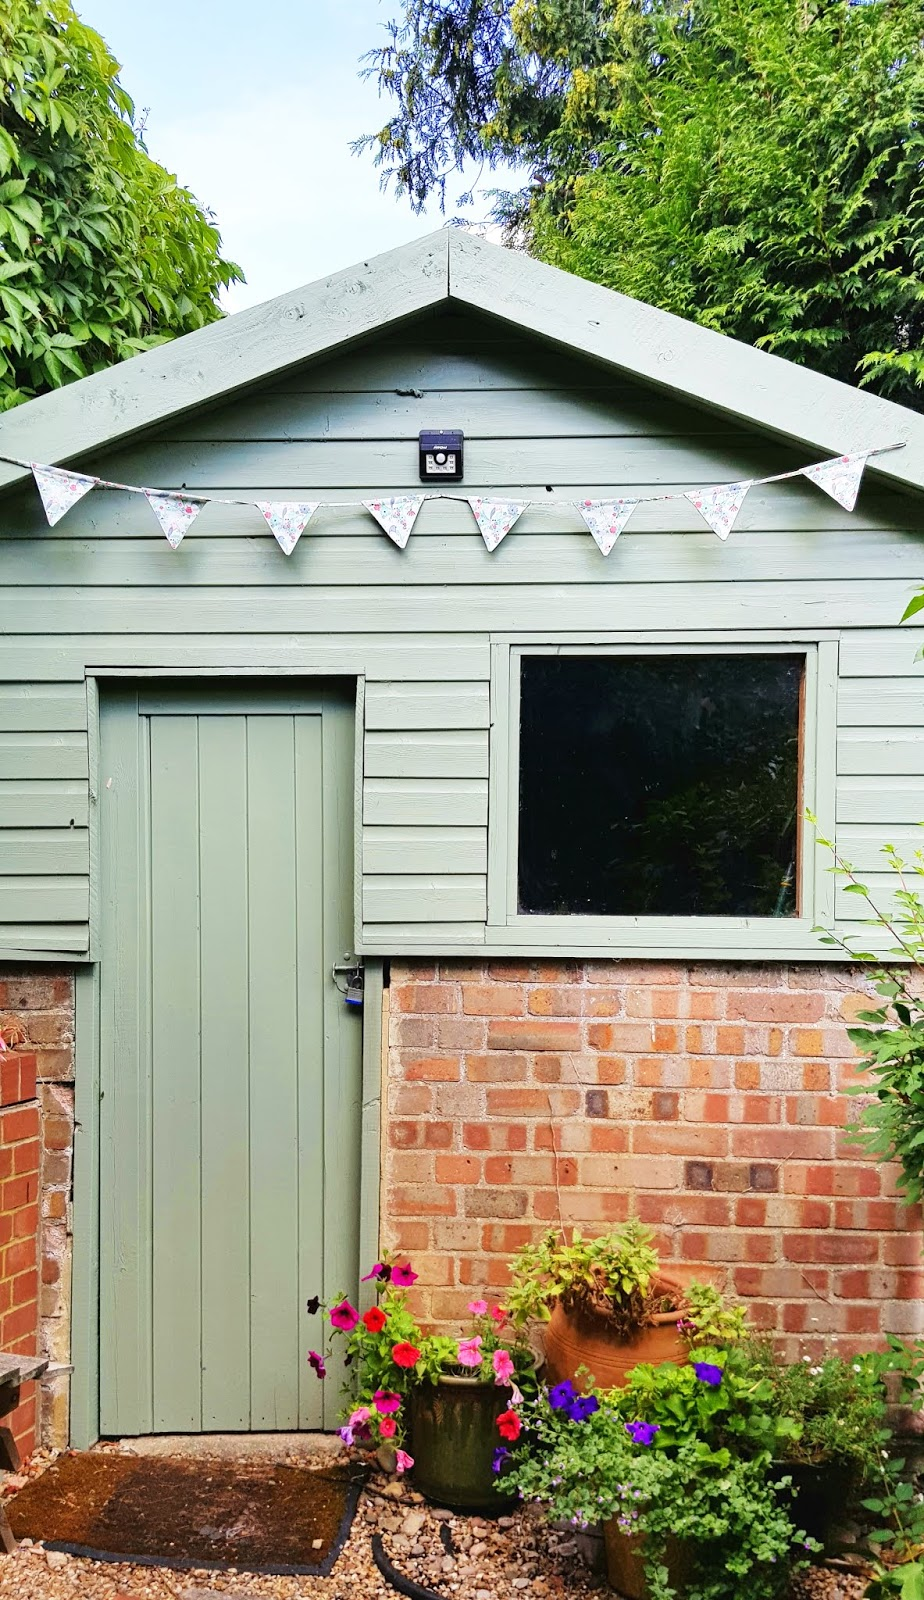 Part brickwork, part wood shed painted Cuprinol rosemary green and decorated with bunting